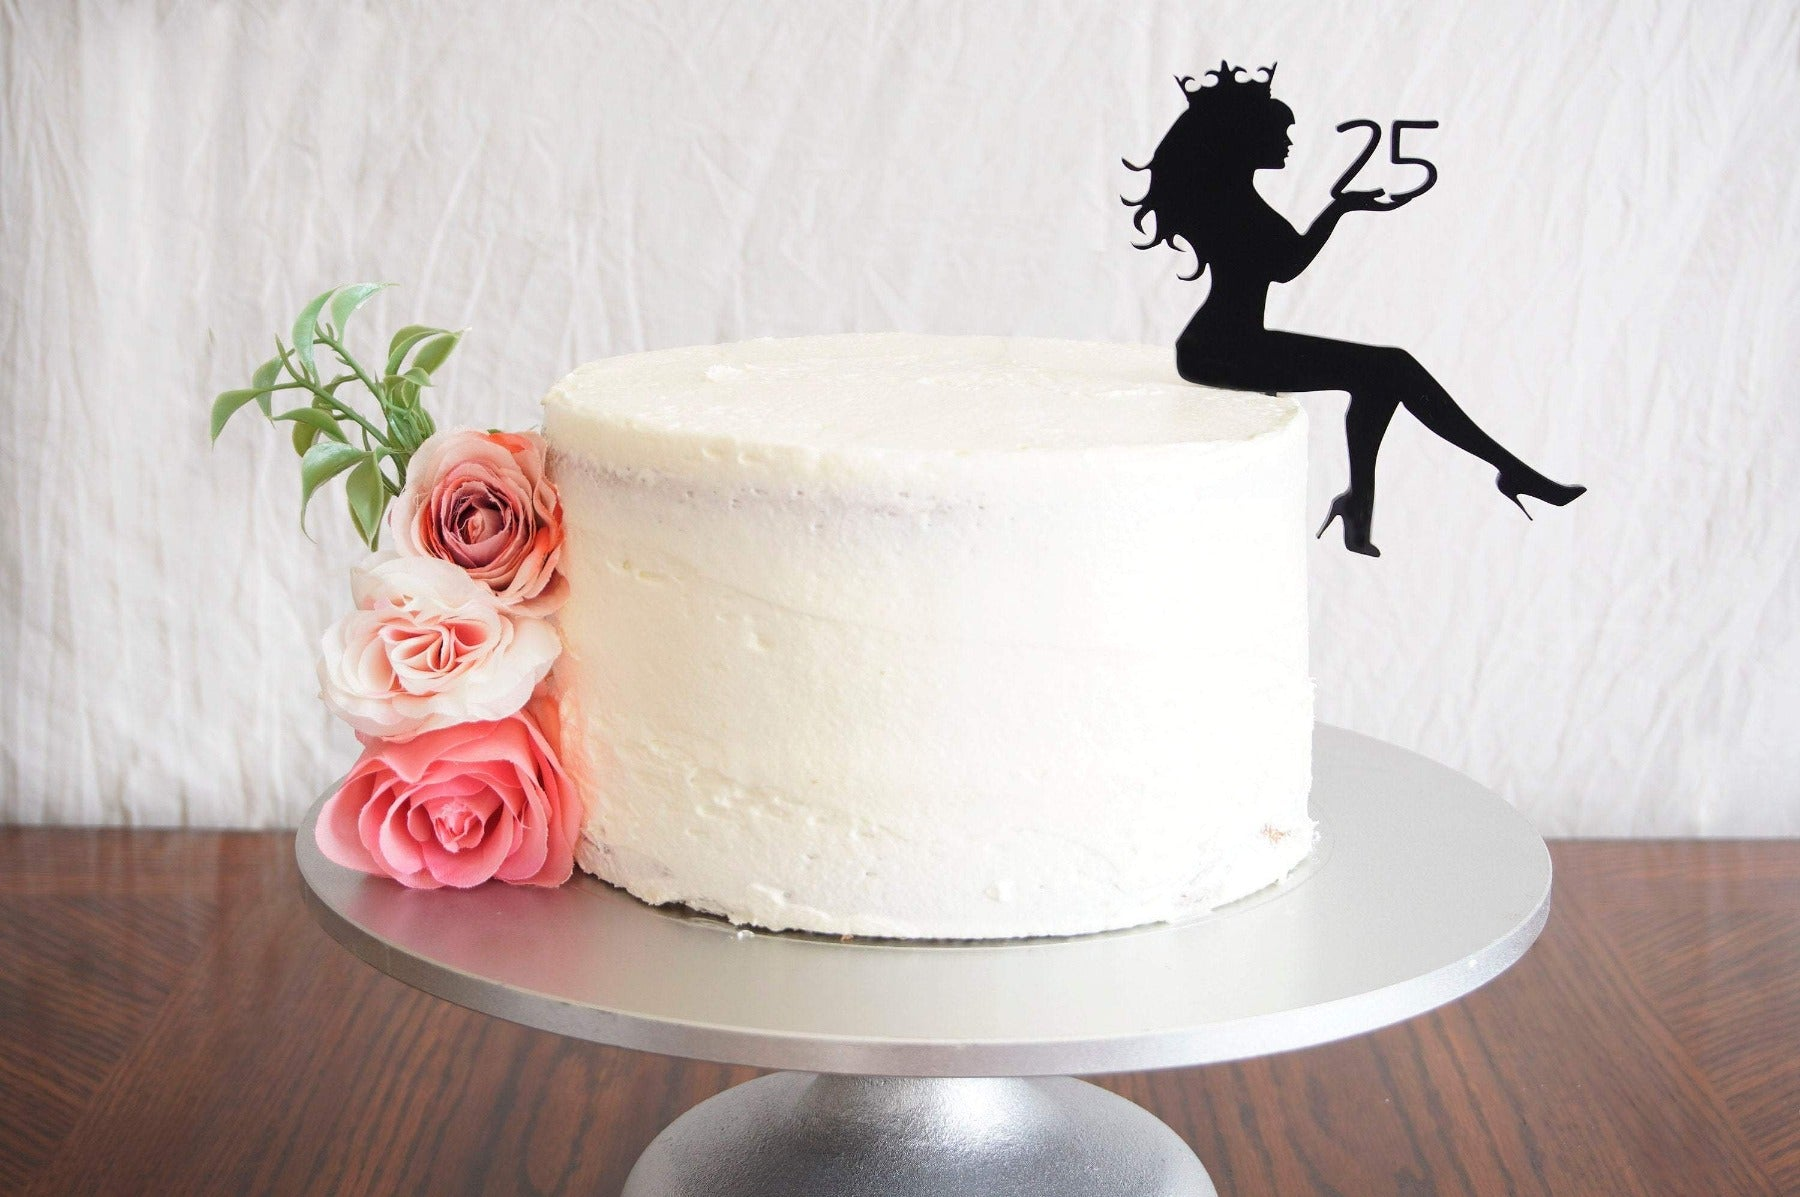 Diva Sitting Girl Silhouette Birthday Cake Topper | Personalized Any Age Birthday Cake Topper | Custom Cake Topper Made with Acrylic